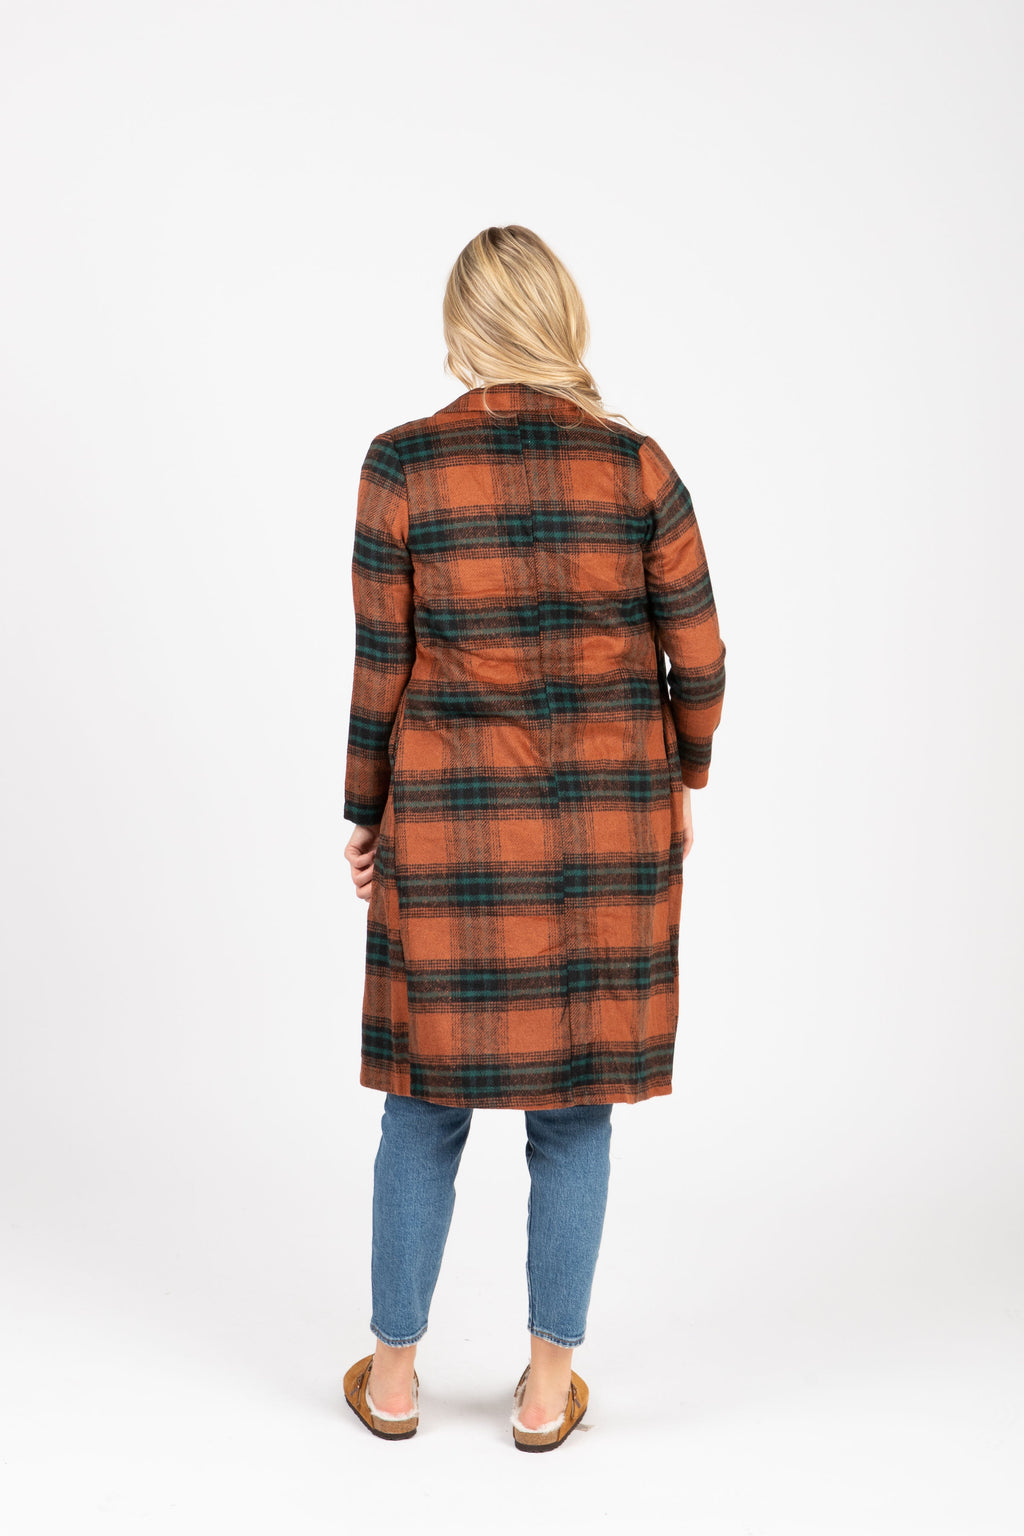 The Gravity Plaid Sweater Coat in Coco, studio shoot; back view